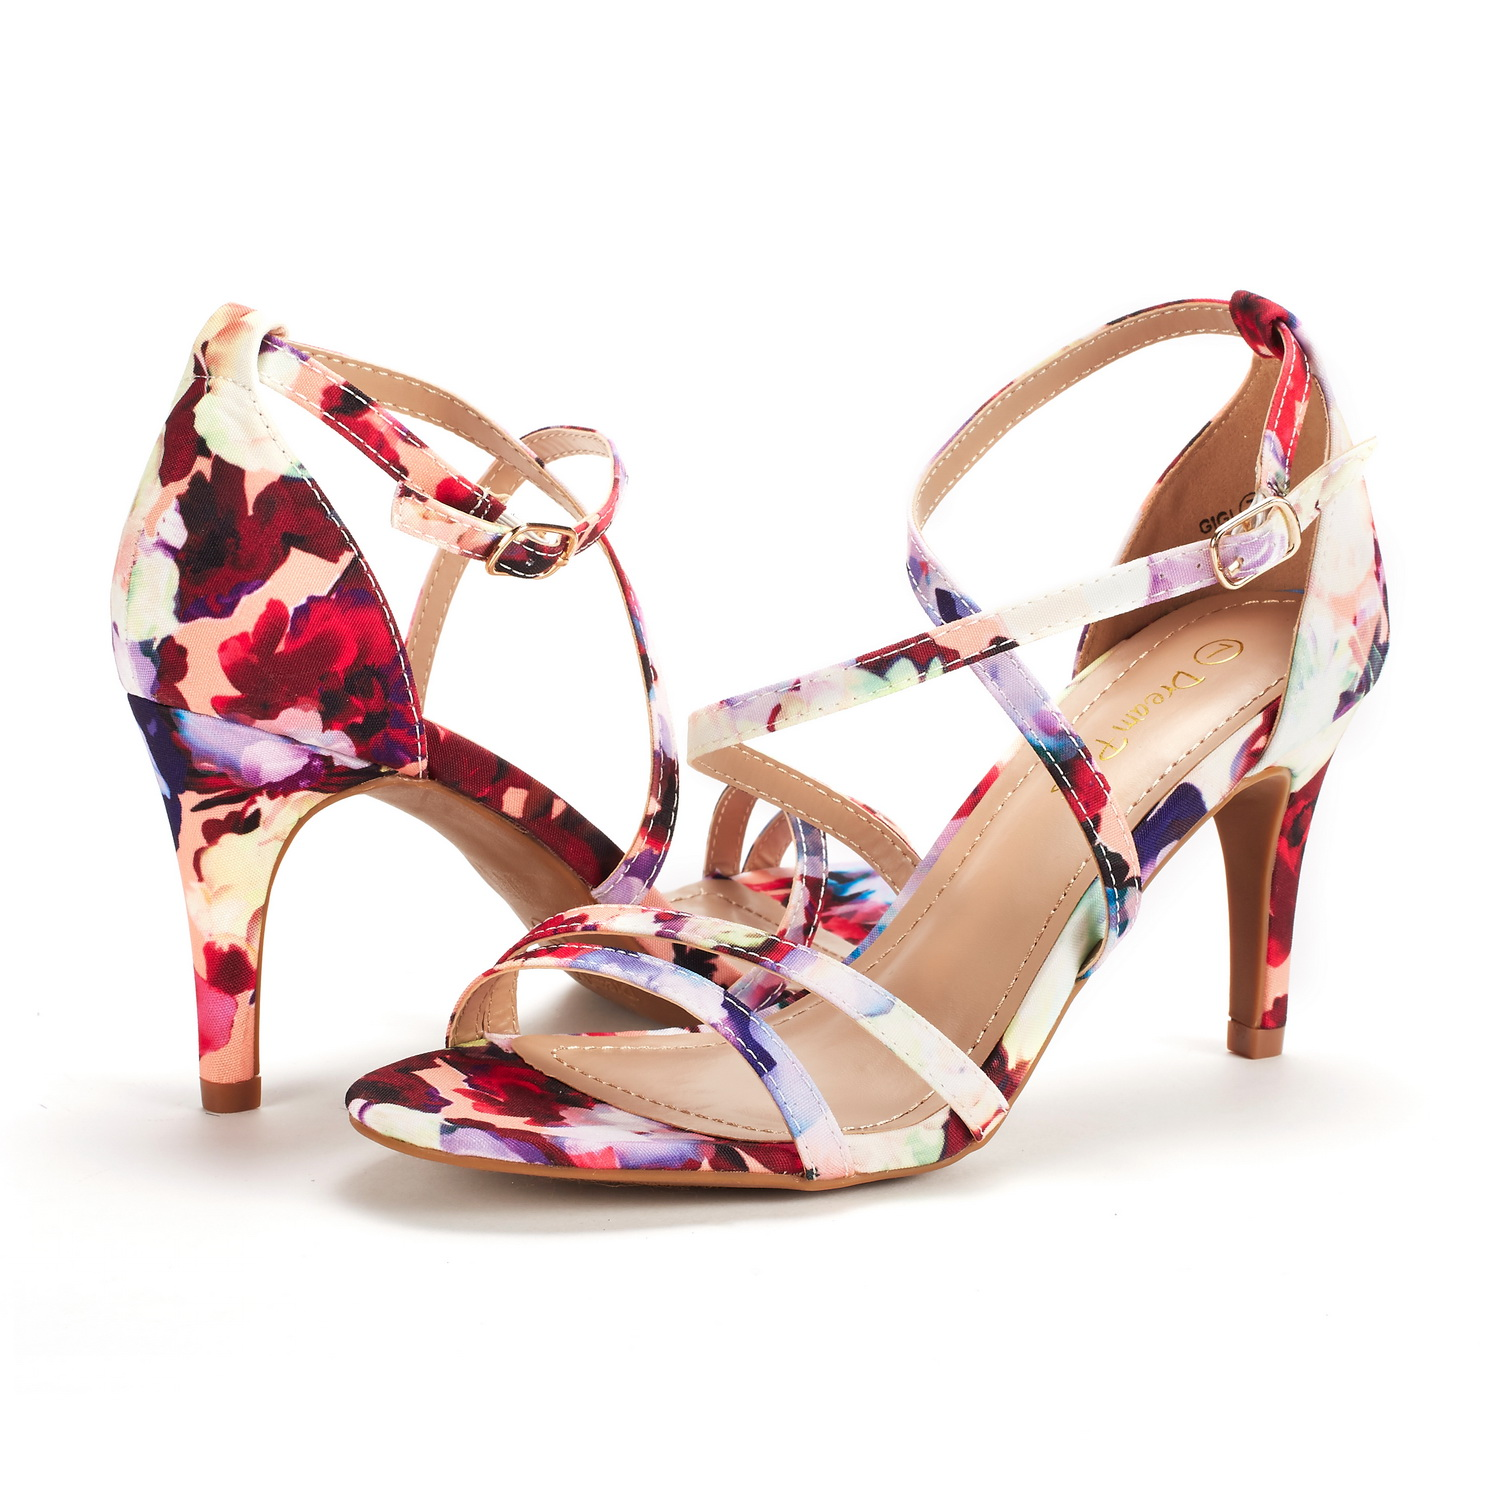 DREAM-PAIRS-Women-039-s-Ankle-Strap-High-Heel-Sandals-Dress-Shoes-Wedding-Party thumbnail 21